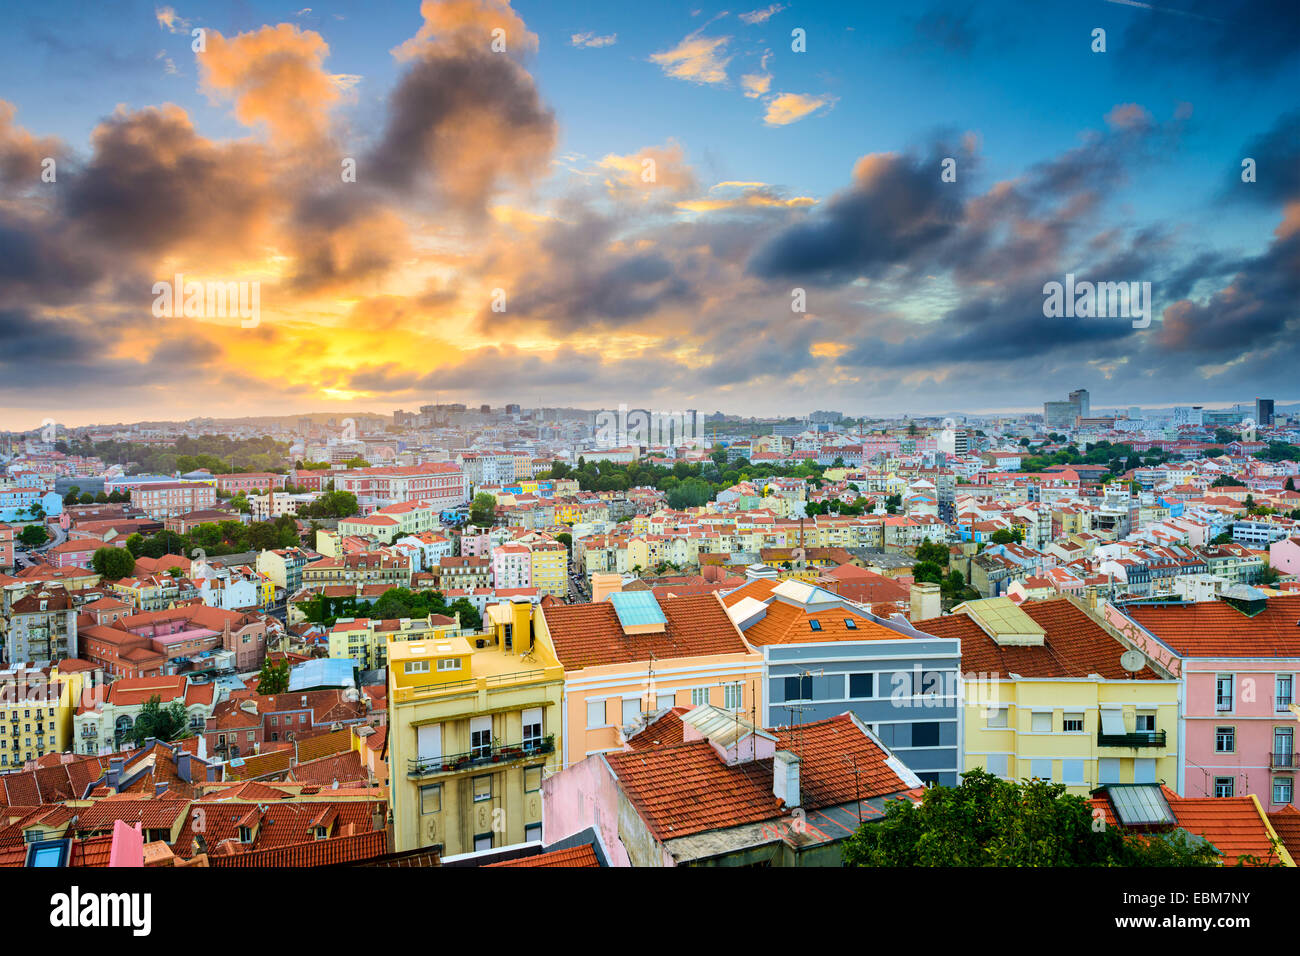 Lisbonne, Portugal quartier de Baixa skyline pendant le coucher du soleil. Photo Stock